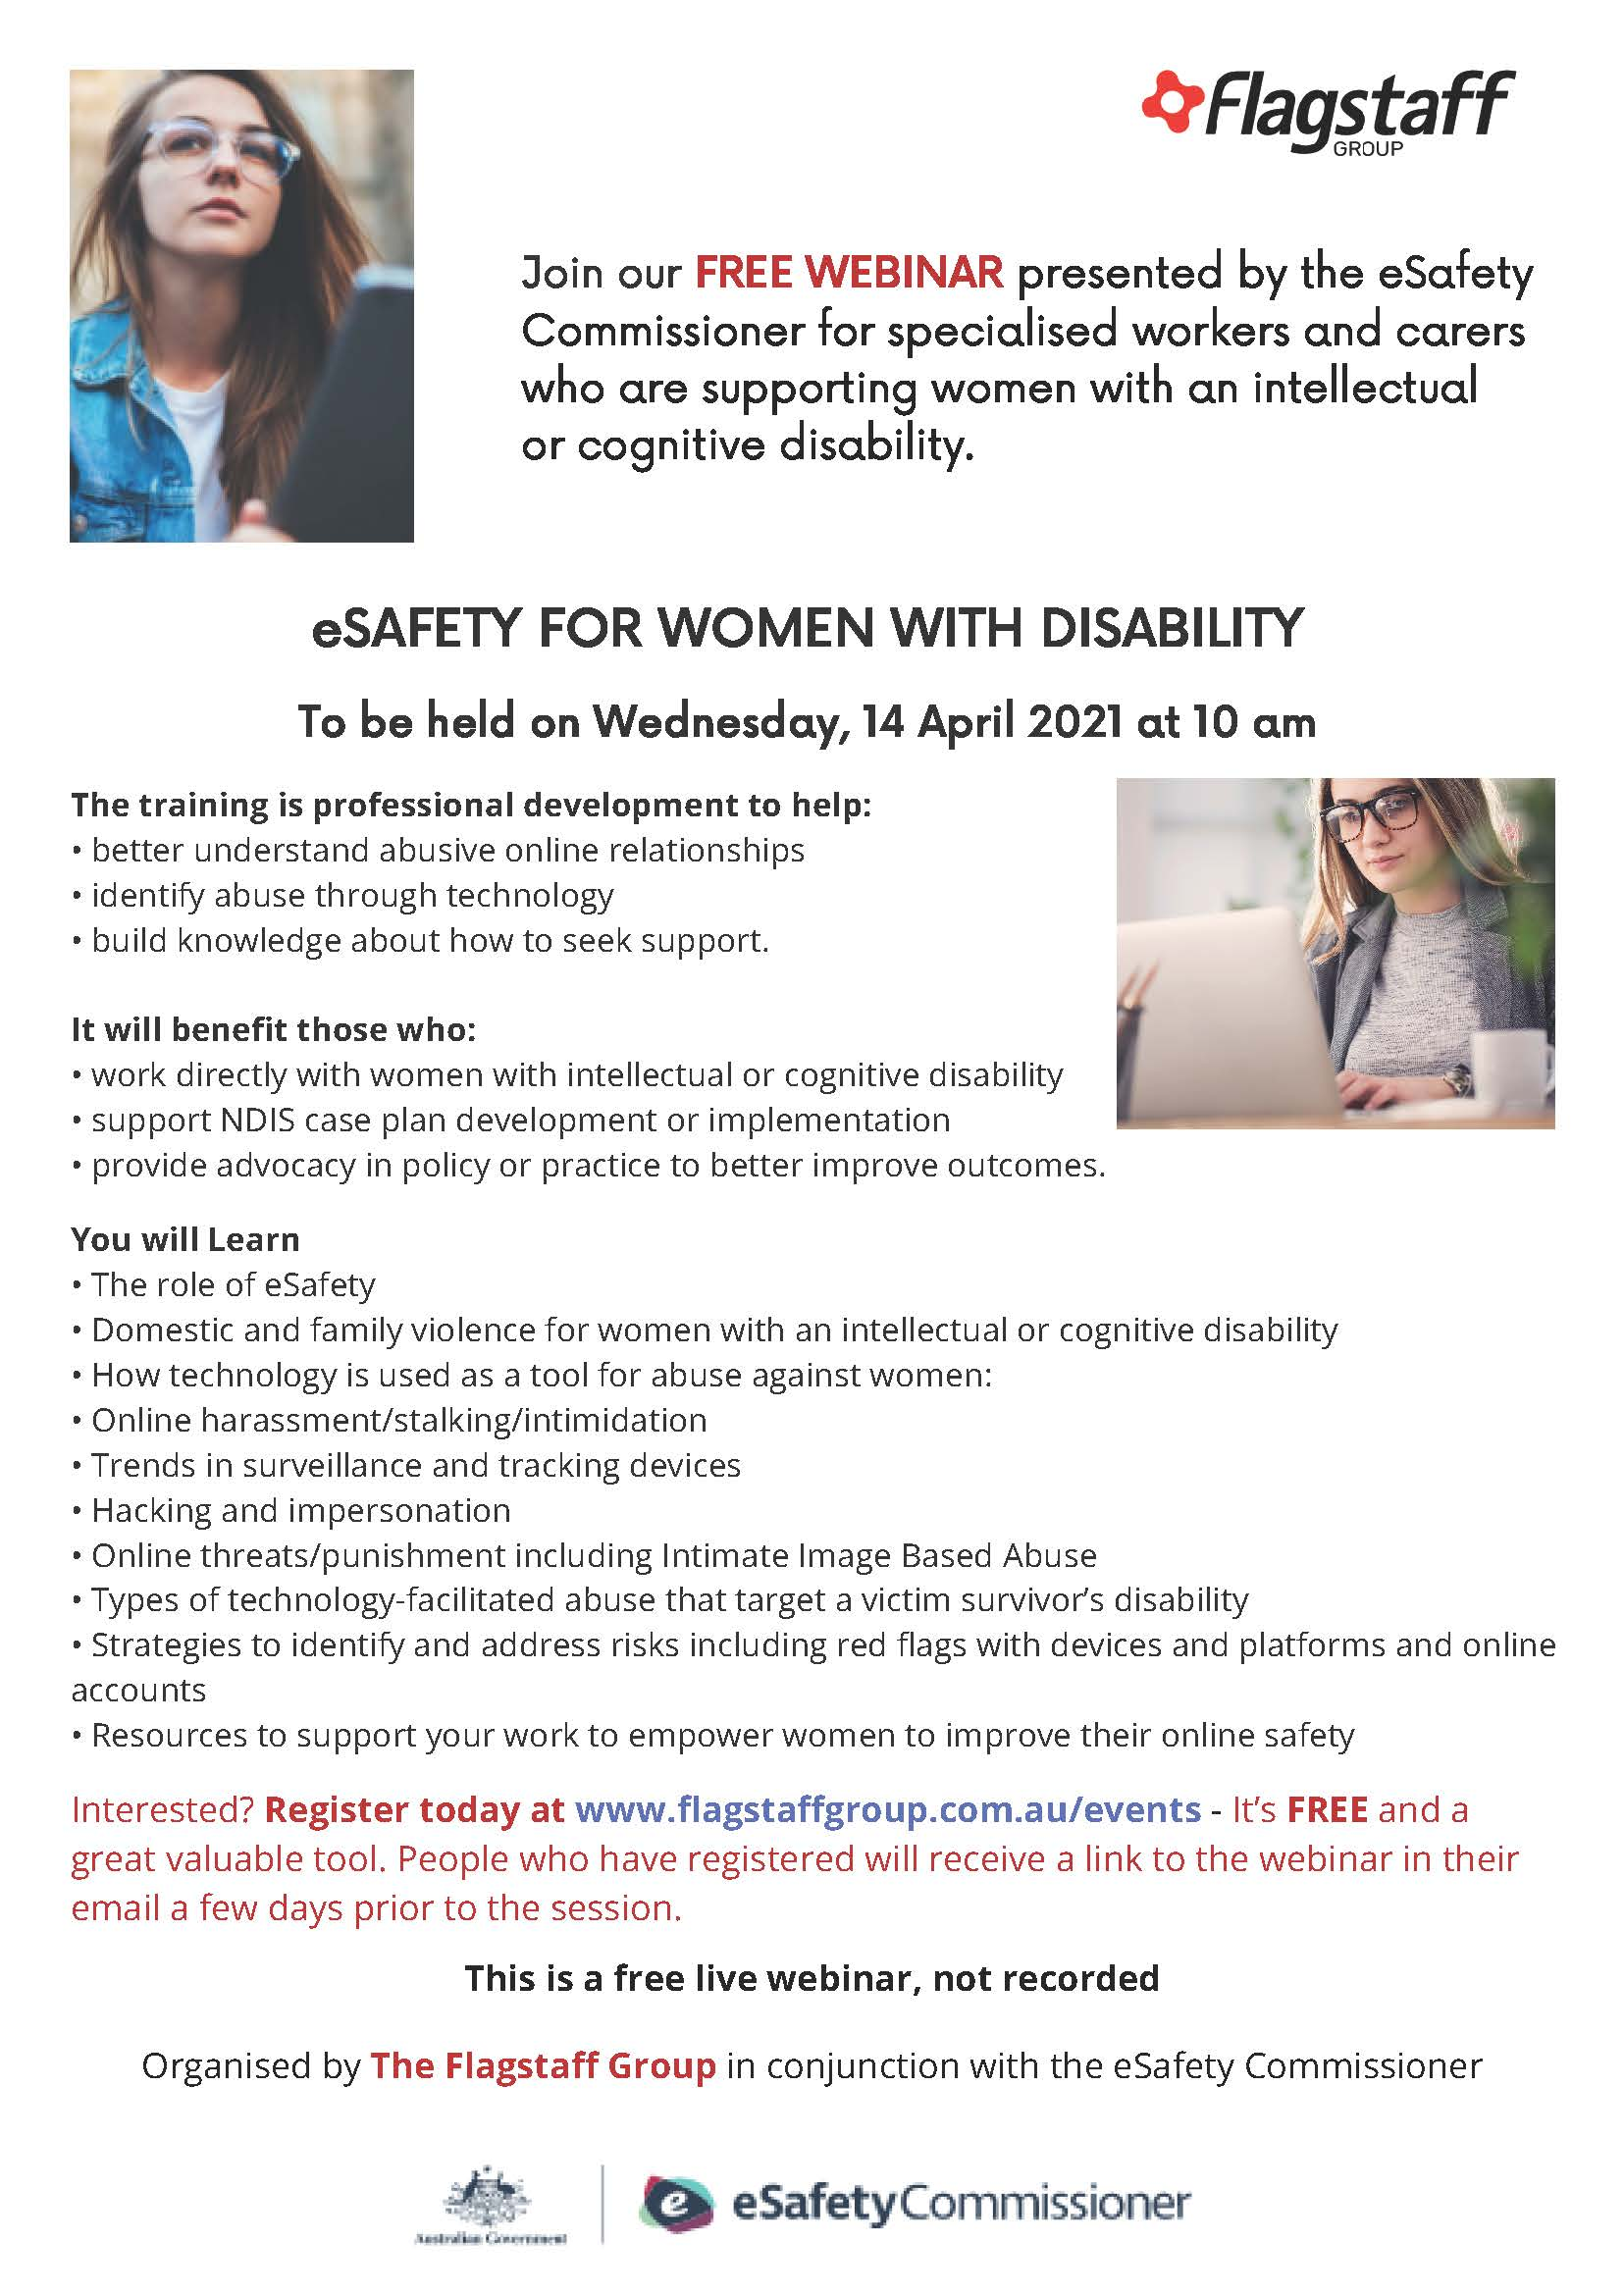 Webinar for workers supporting women with an intellectual or cognitive disability